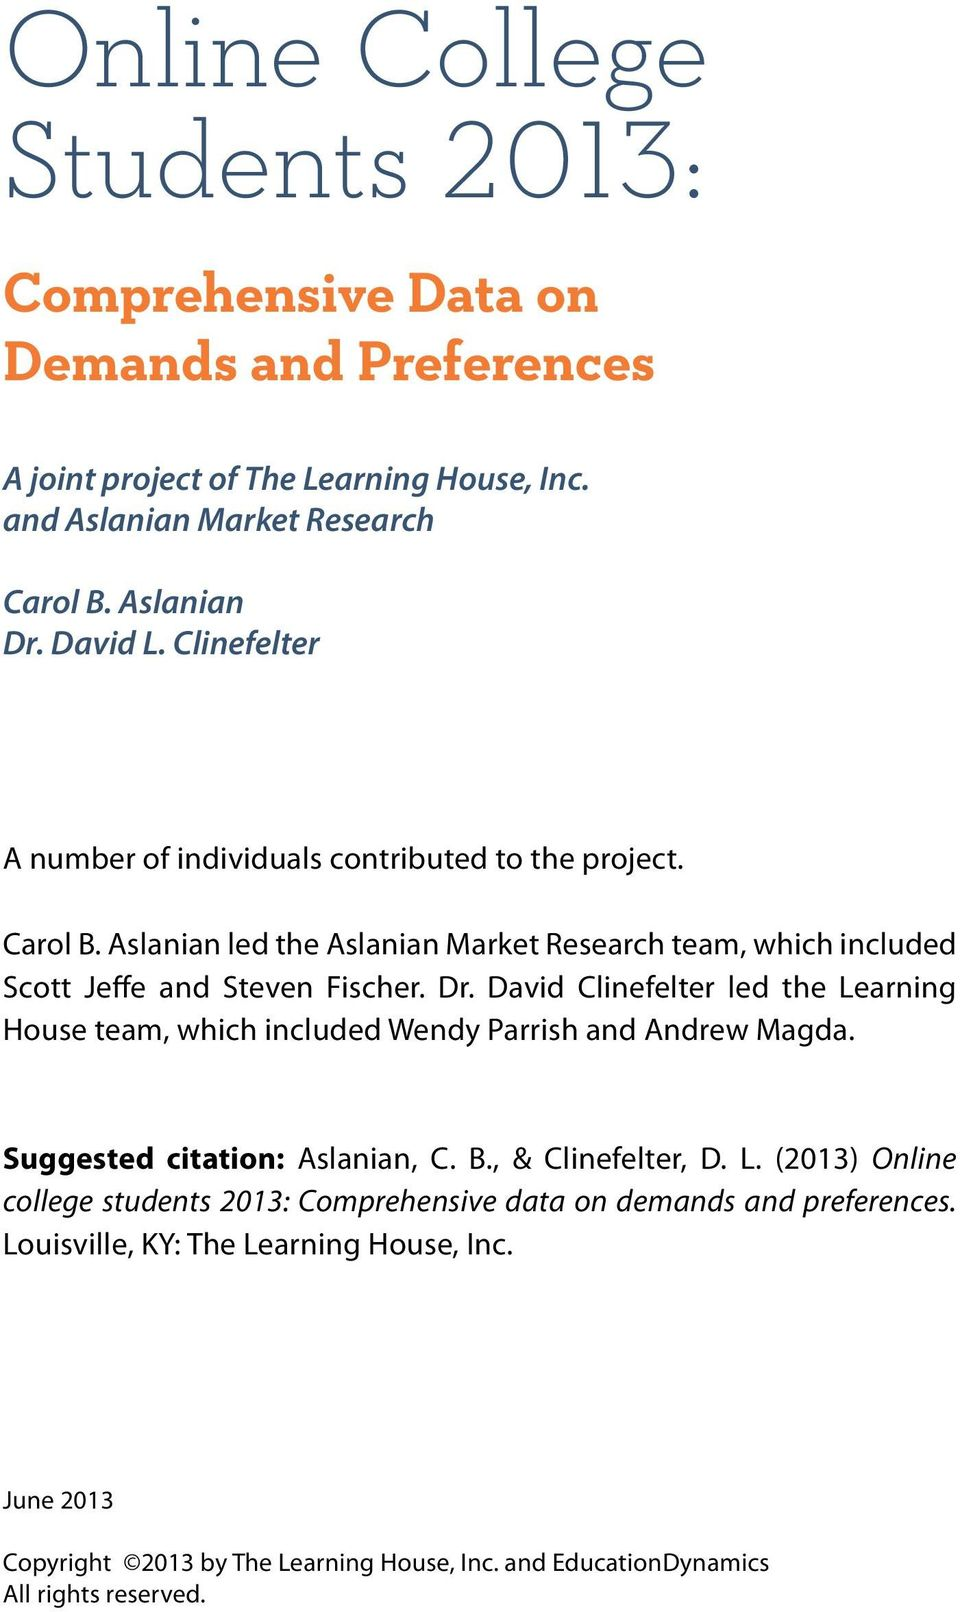 David Clinefelter led the Learning House team, which included Wendy Parrish and Andrew Magda. Suggested citation: Aslanian, C. B., & Clinefelter, D. L. (2013) Online college students 2013: Comprehensive data on demands and preferences.